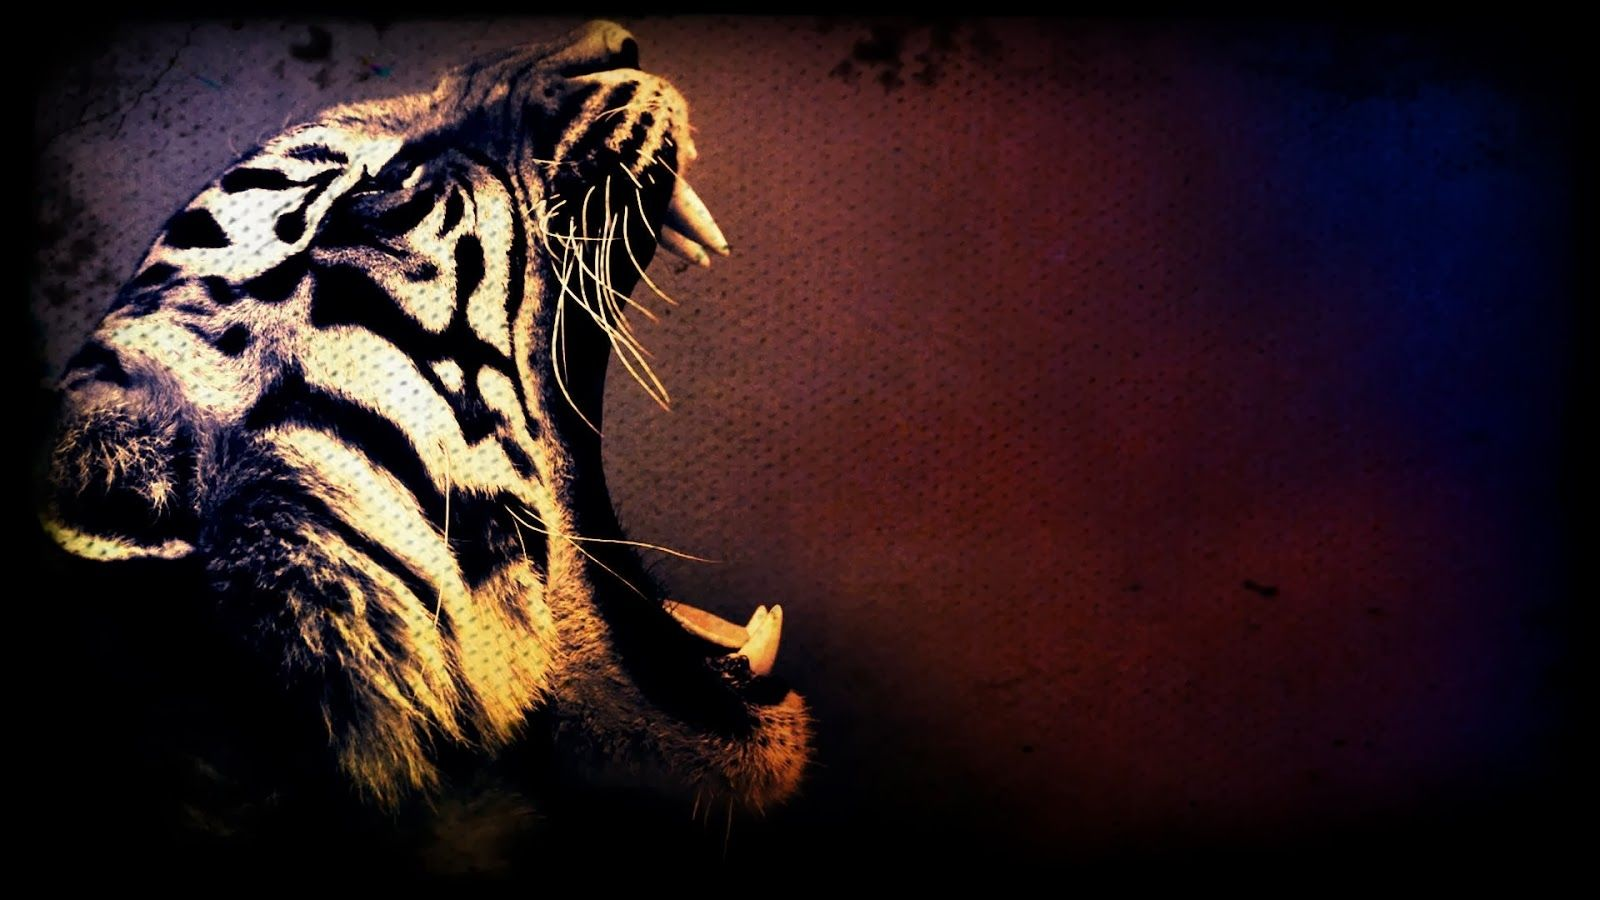 HD Cool Backgrounds Of Tigers